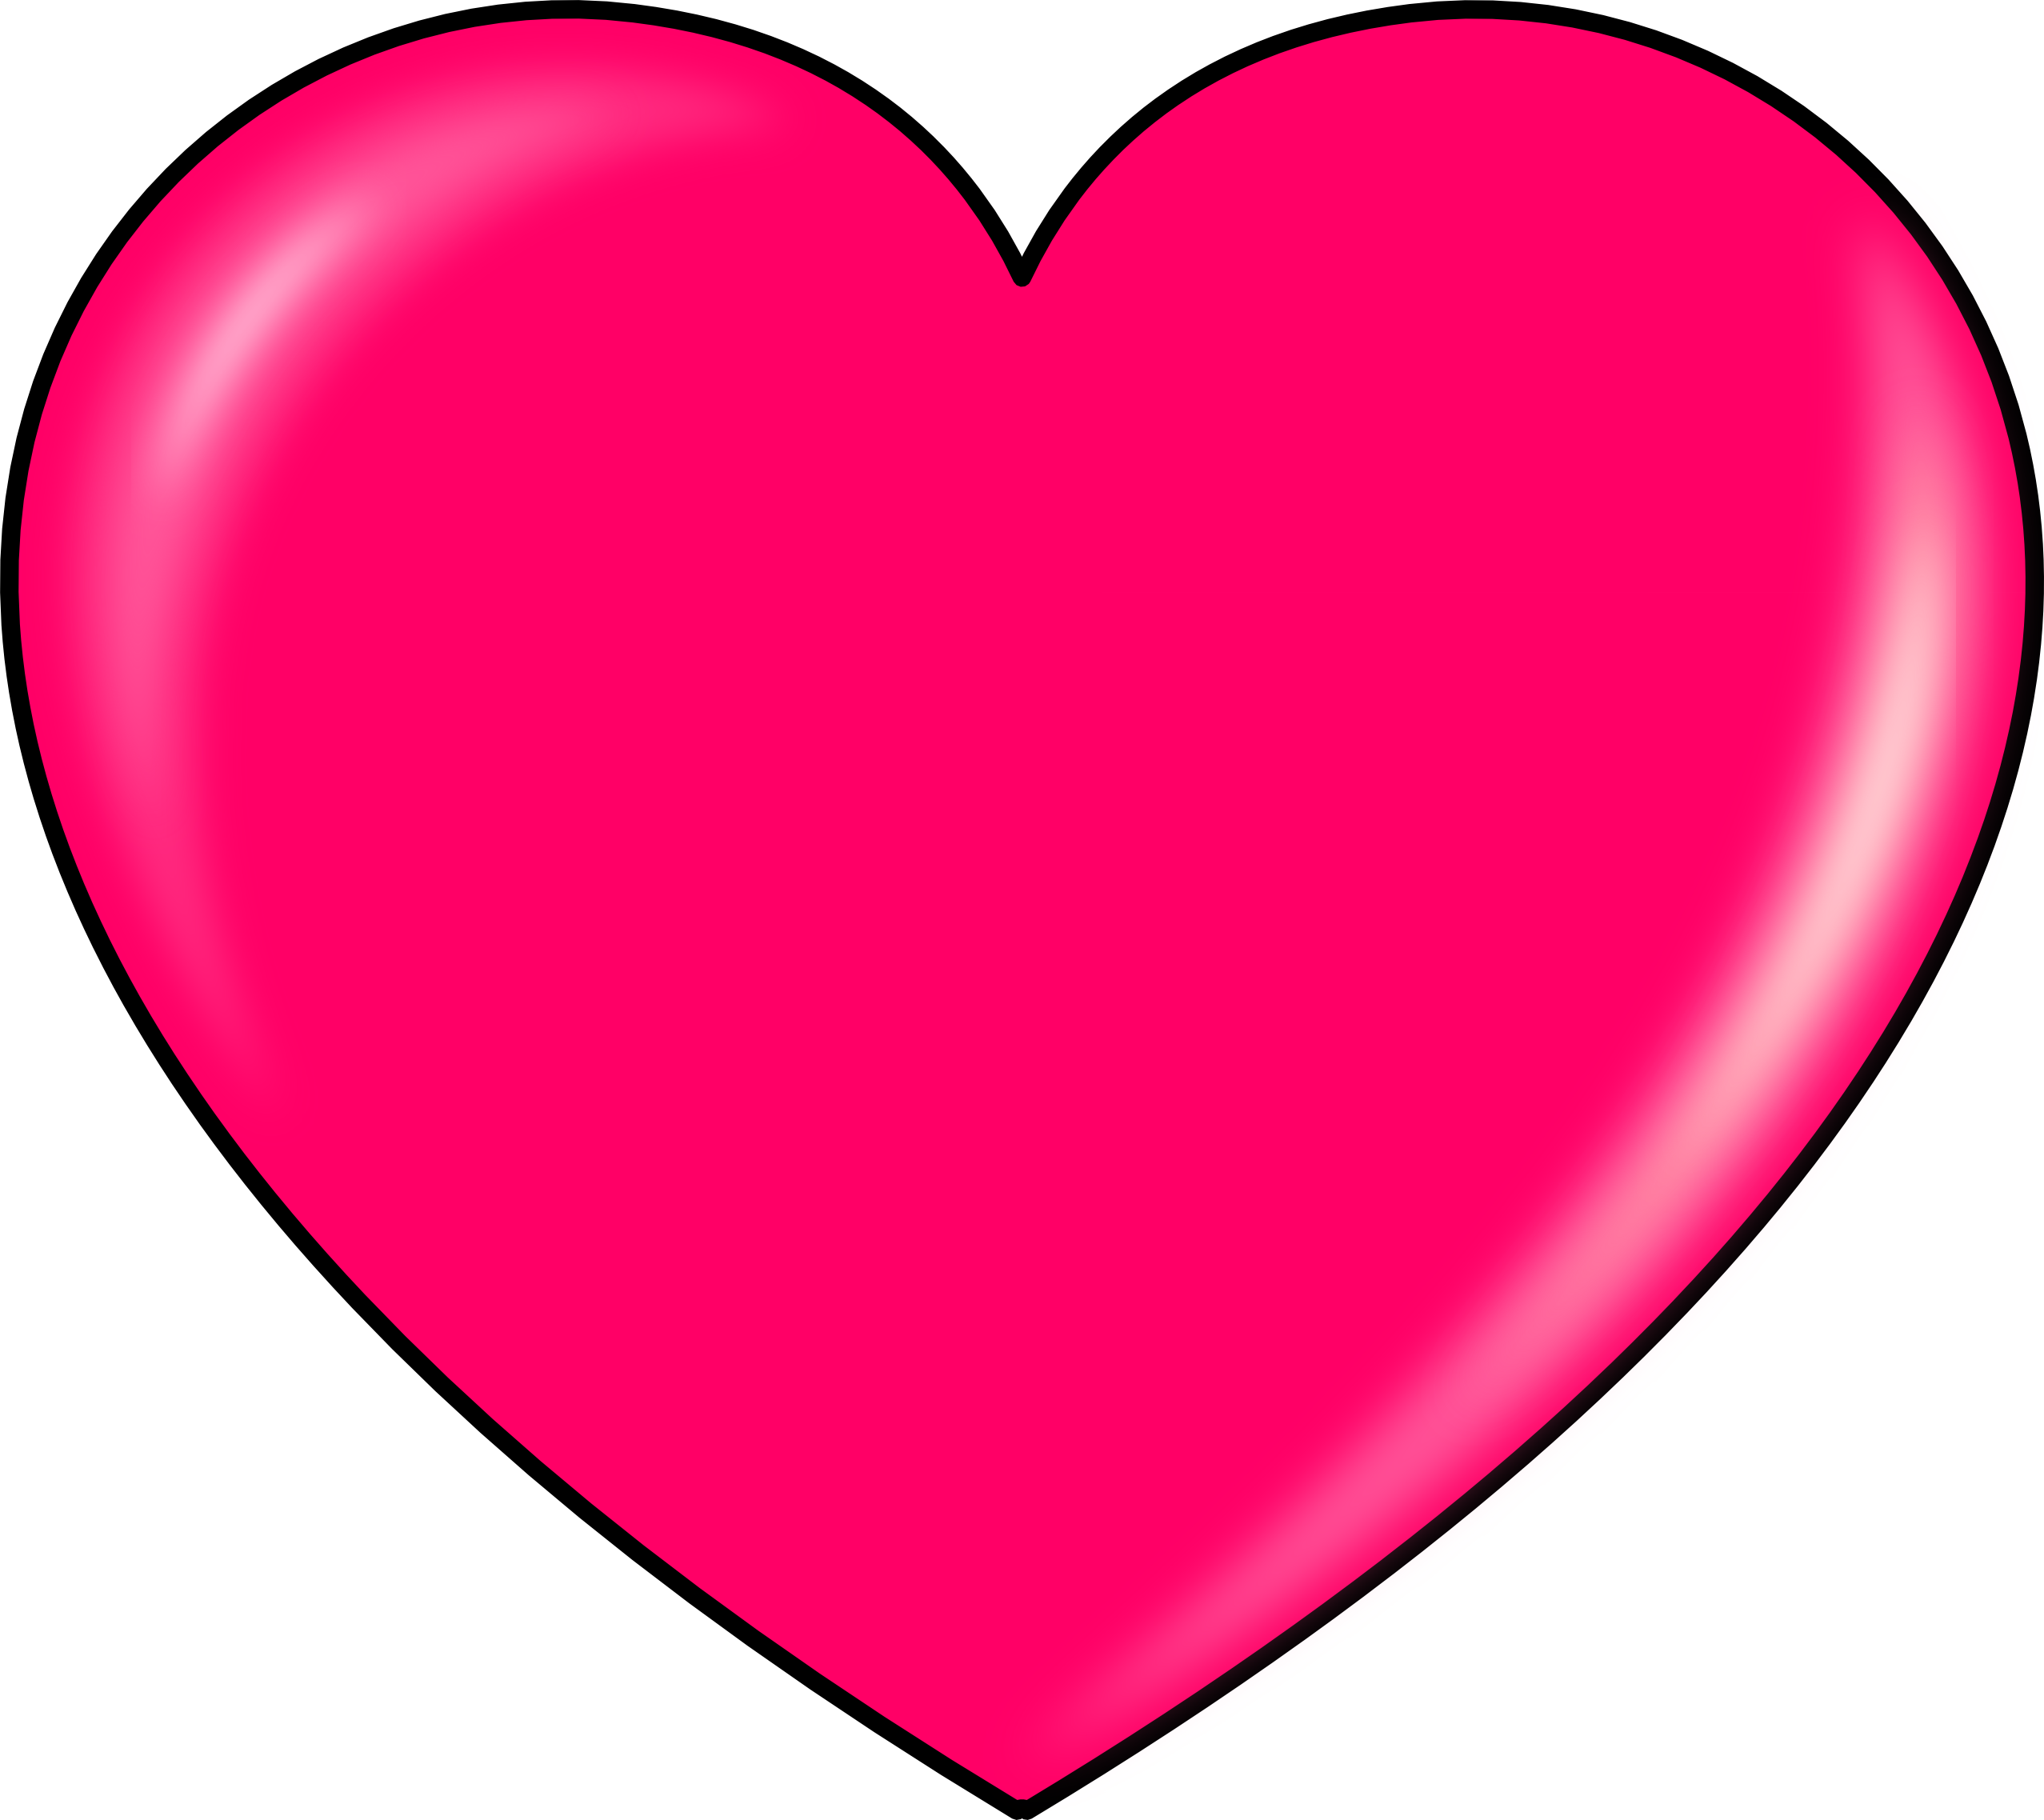 Beautiful heart clipart free download - Pink Love Heart PNG HD - Heart PNG HD Free